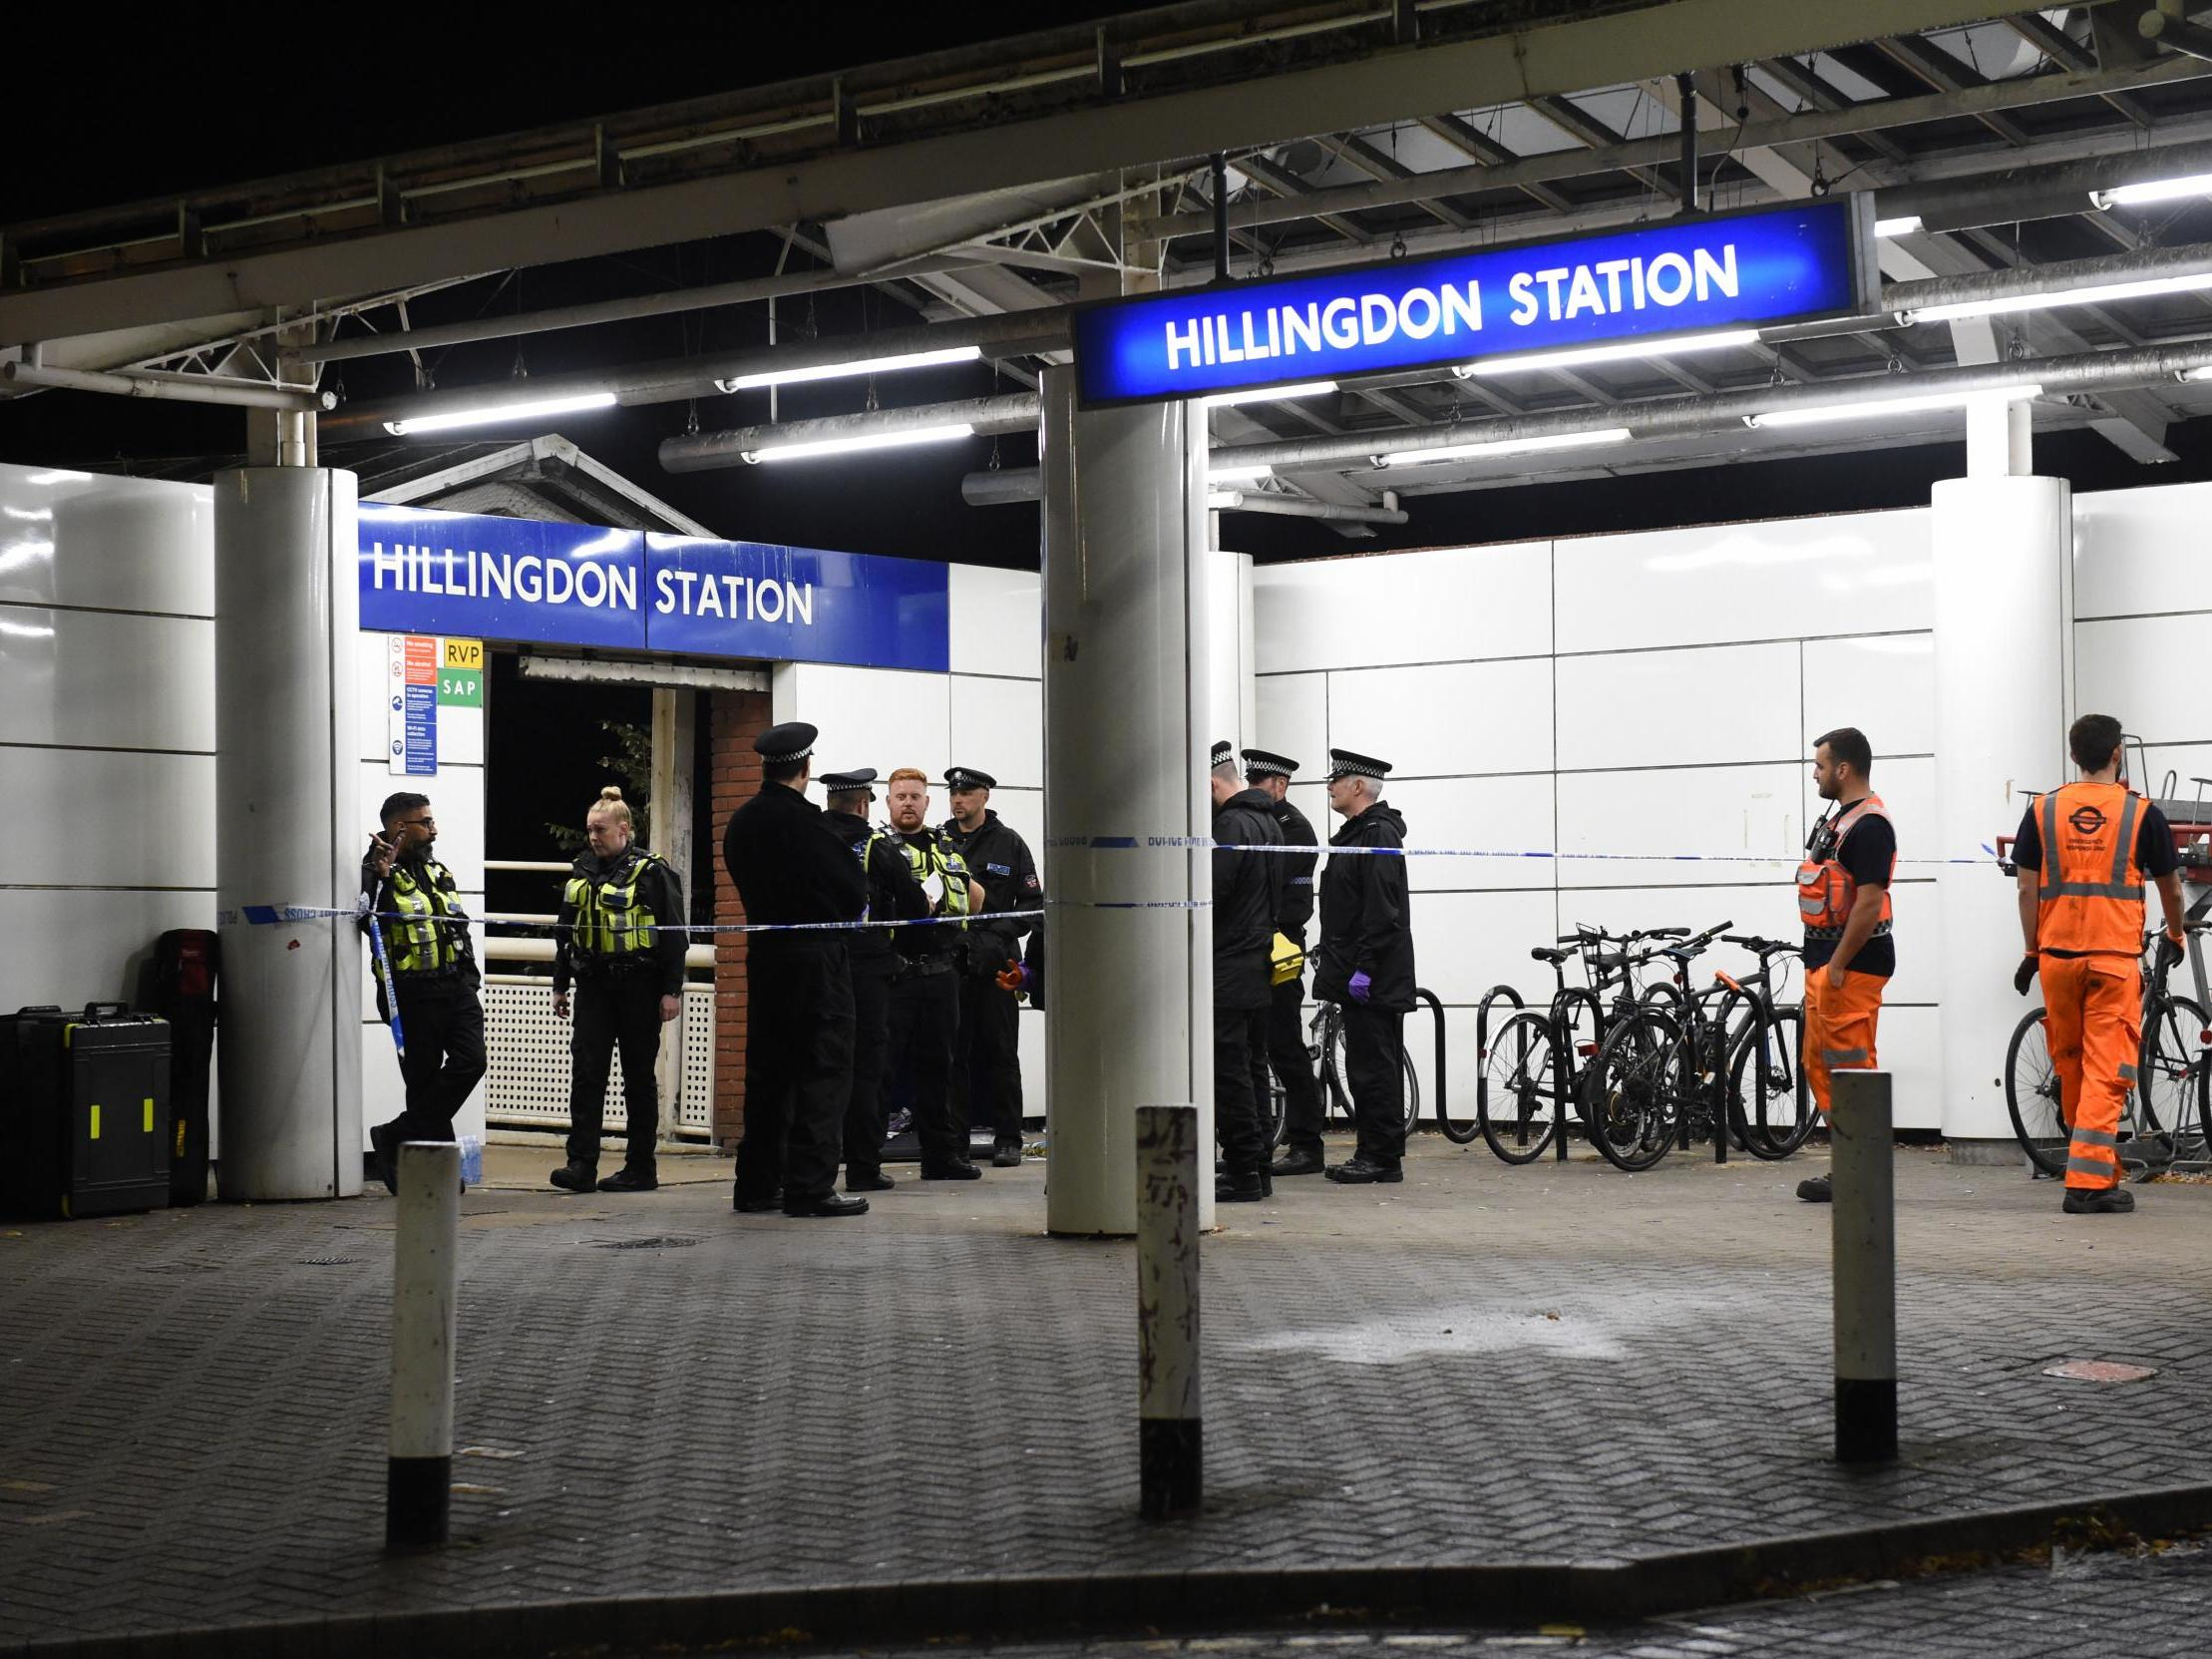 Hillingdon stabbing: Man killed in Tube station fight was Arsenal fan on way to match, police say